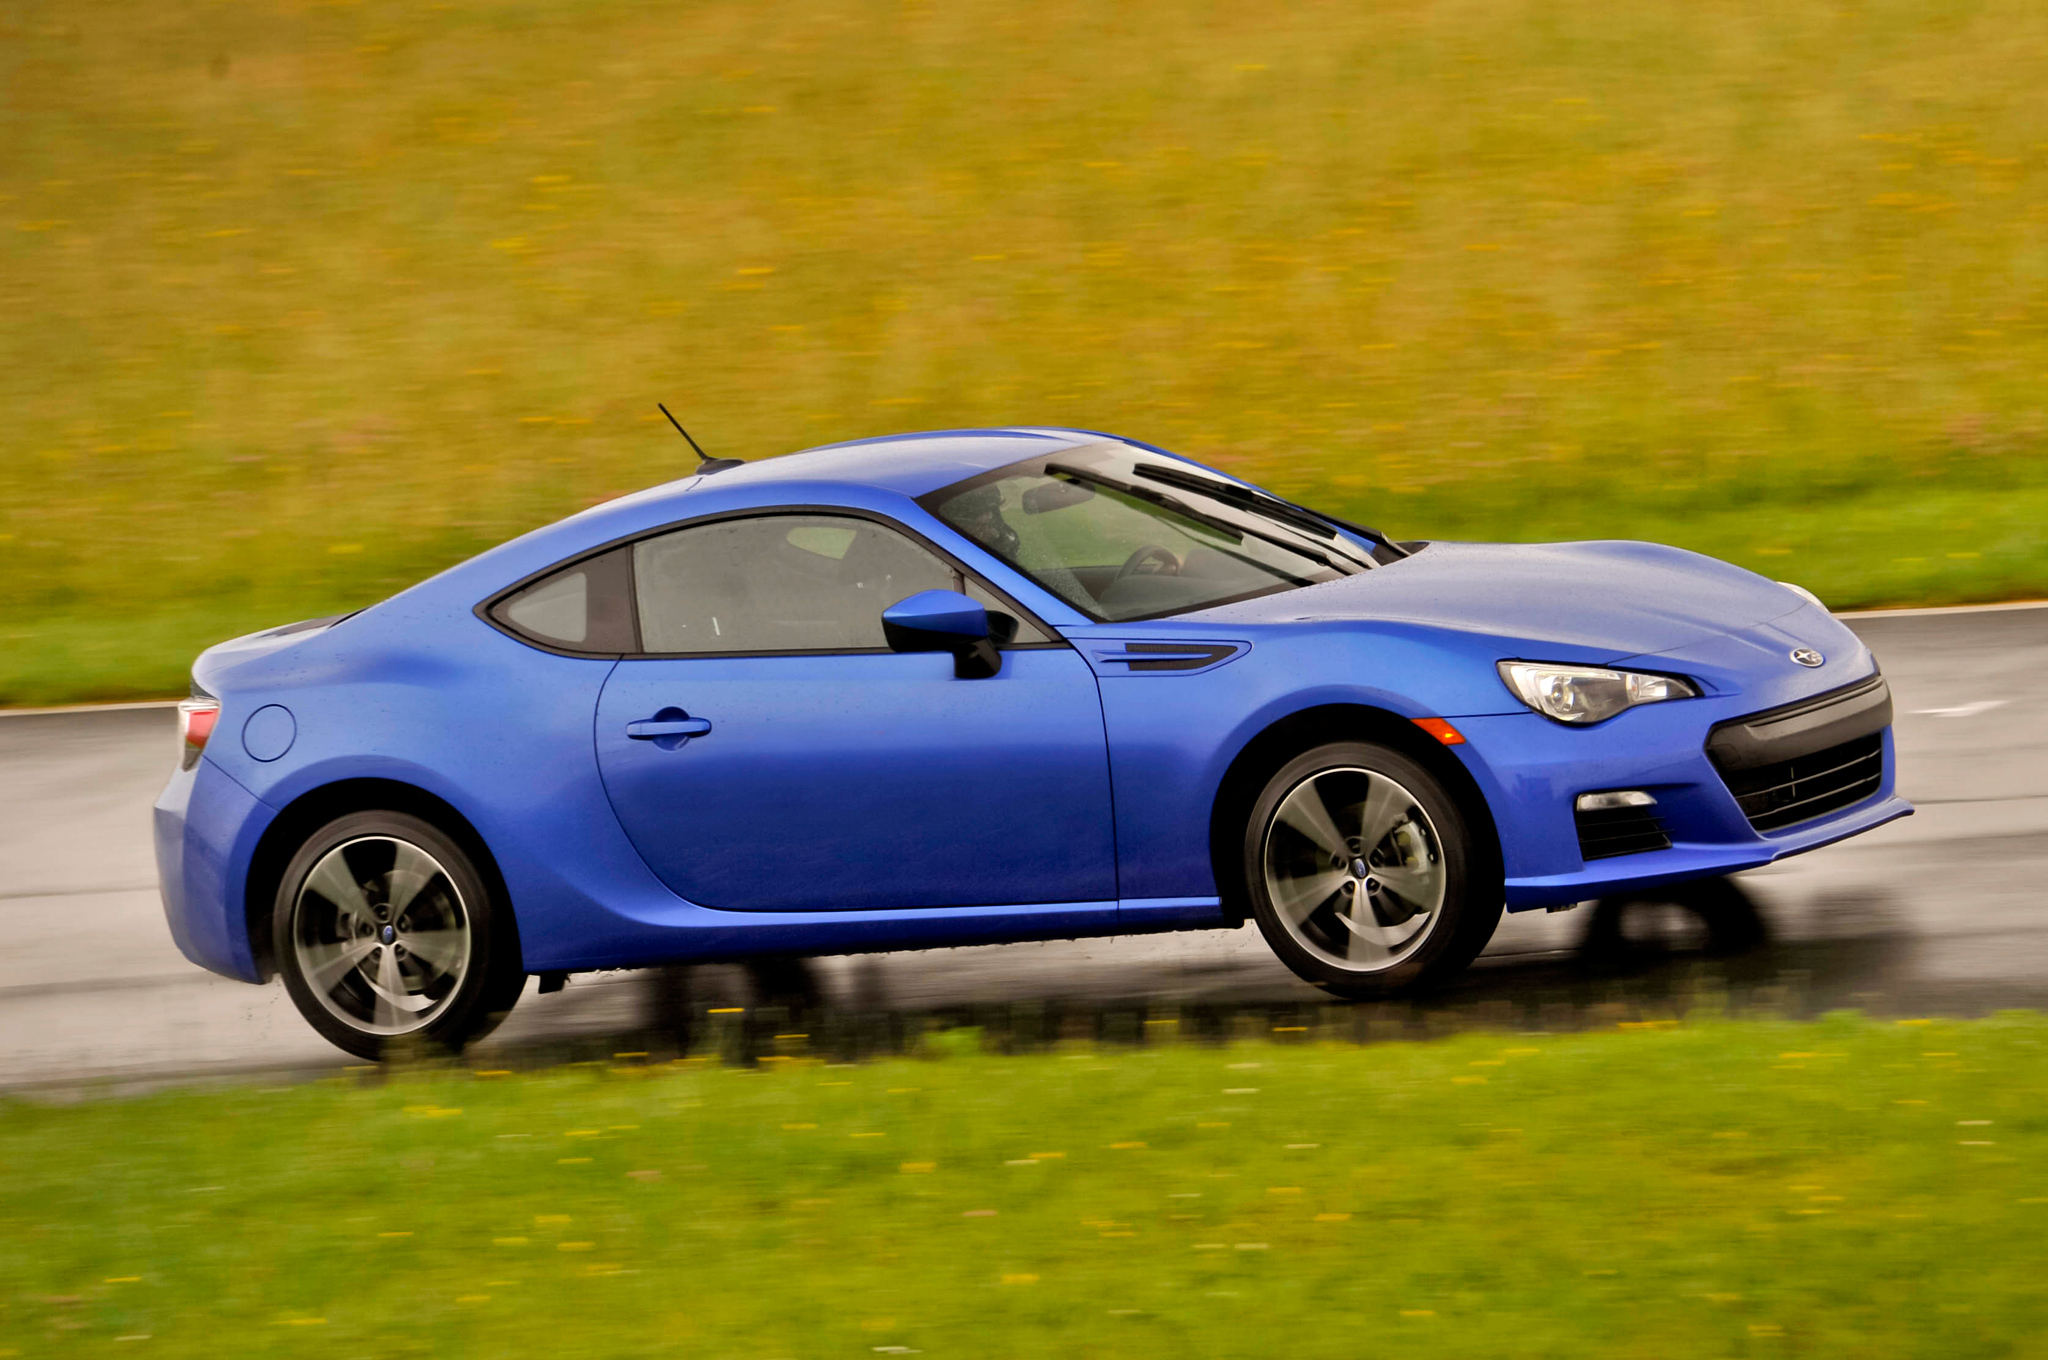 2014 subaru brz priced from 26 390. Black Bedroom Furniture Sets. Home Design Ideas